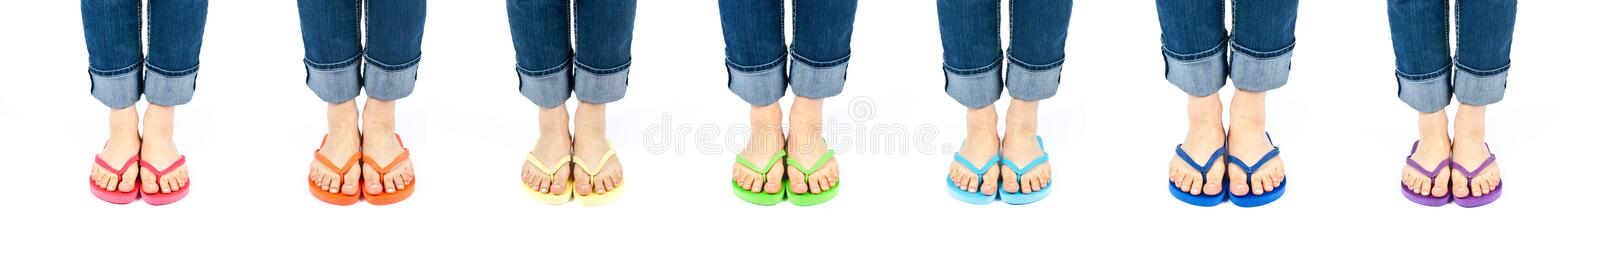 Download Row Of Feet Wearing Colorful Flip Flops Stock Image - Image: 19504927